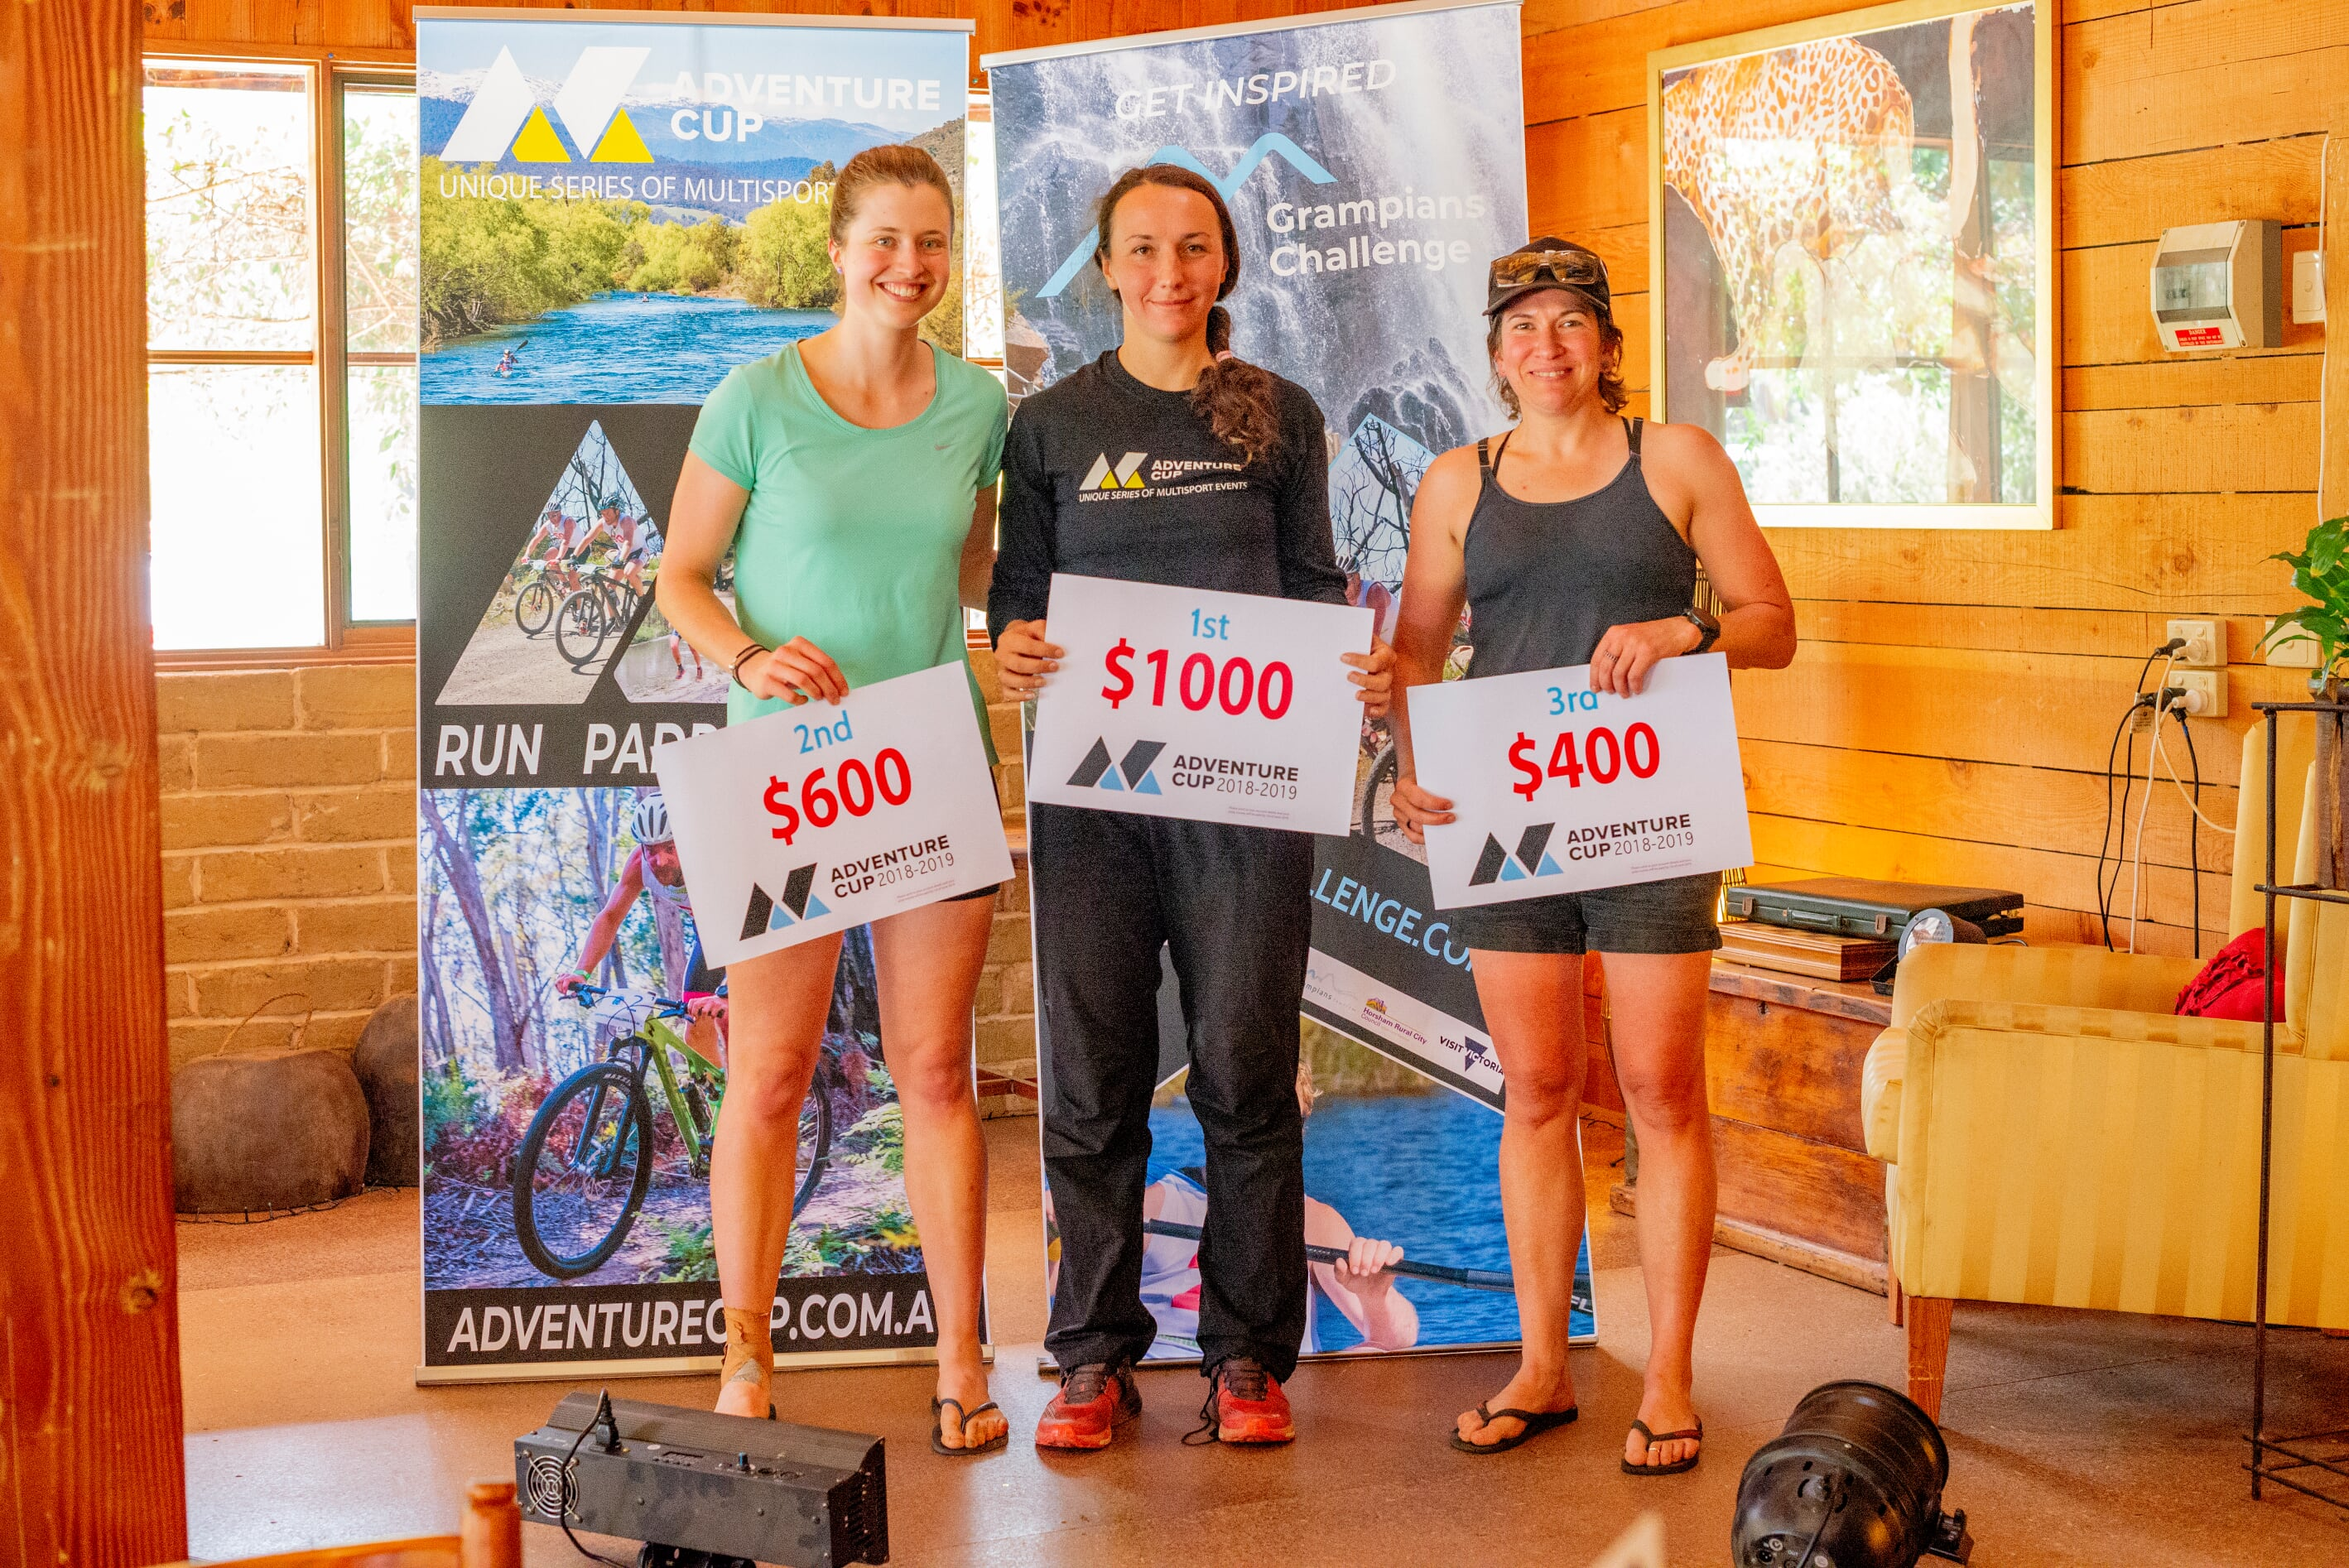 adventure cup female winners at grampians challenge